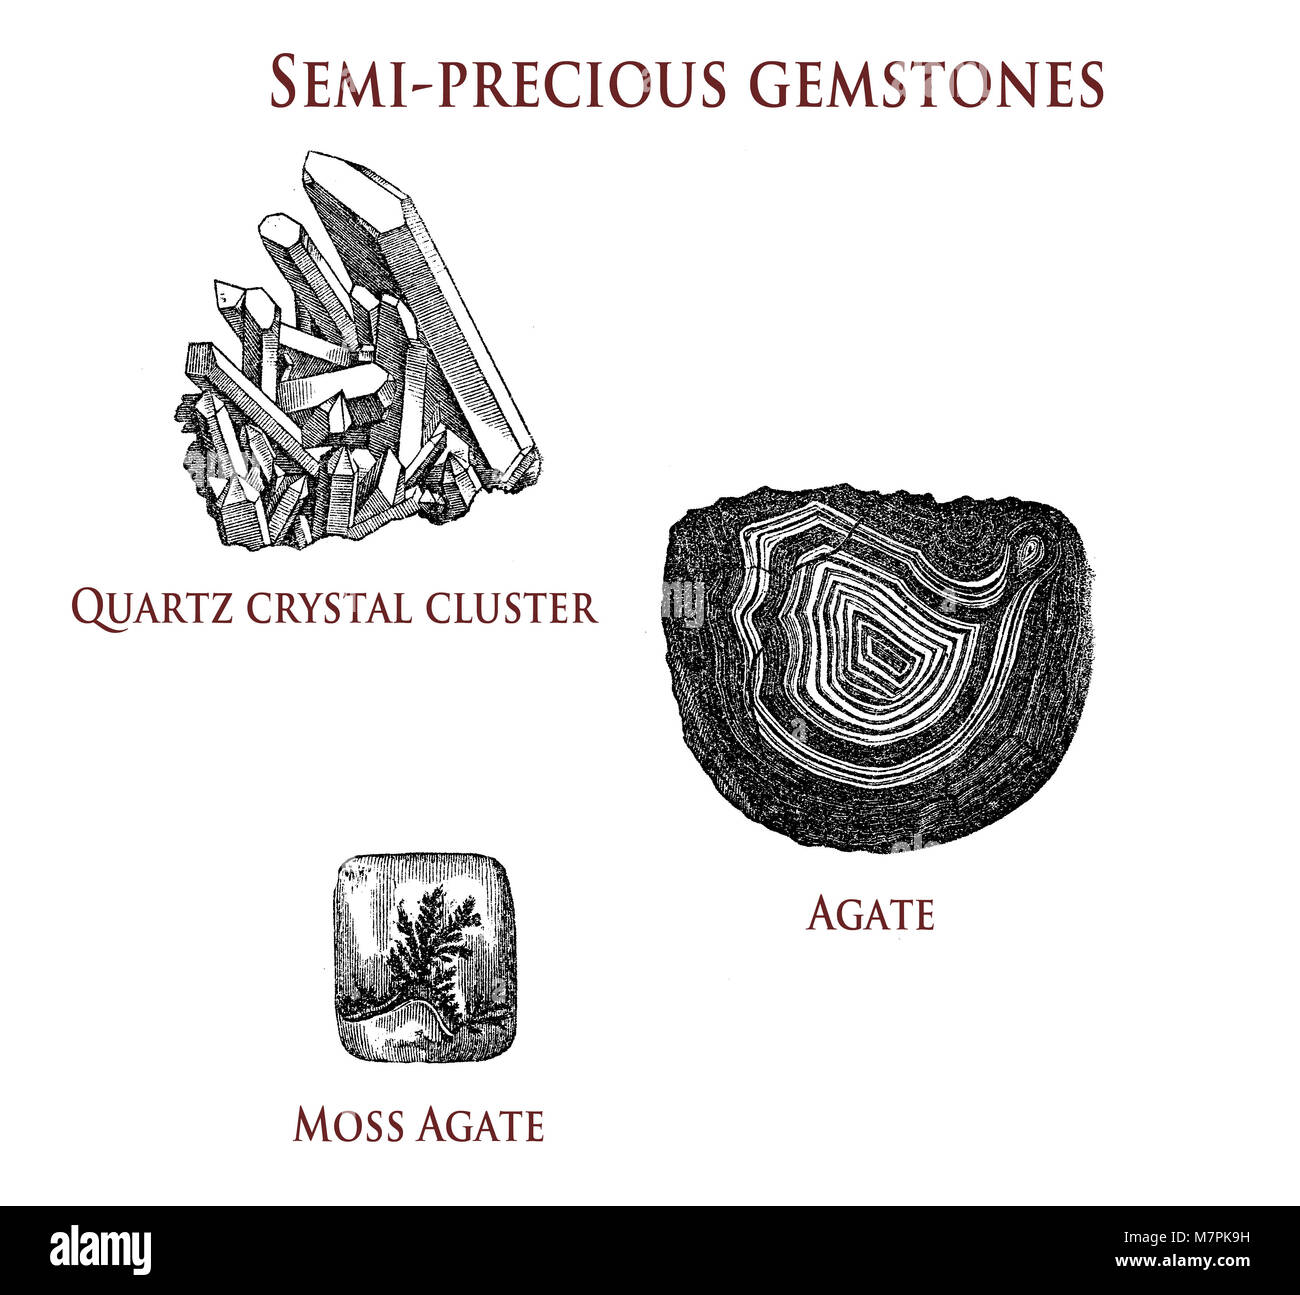 vintage illustration of semi-precious gemstones: quartz, agate and moss agate - Stock Image